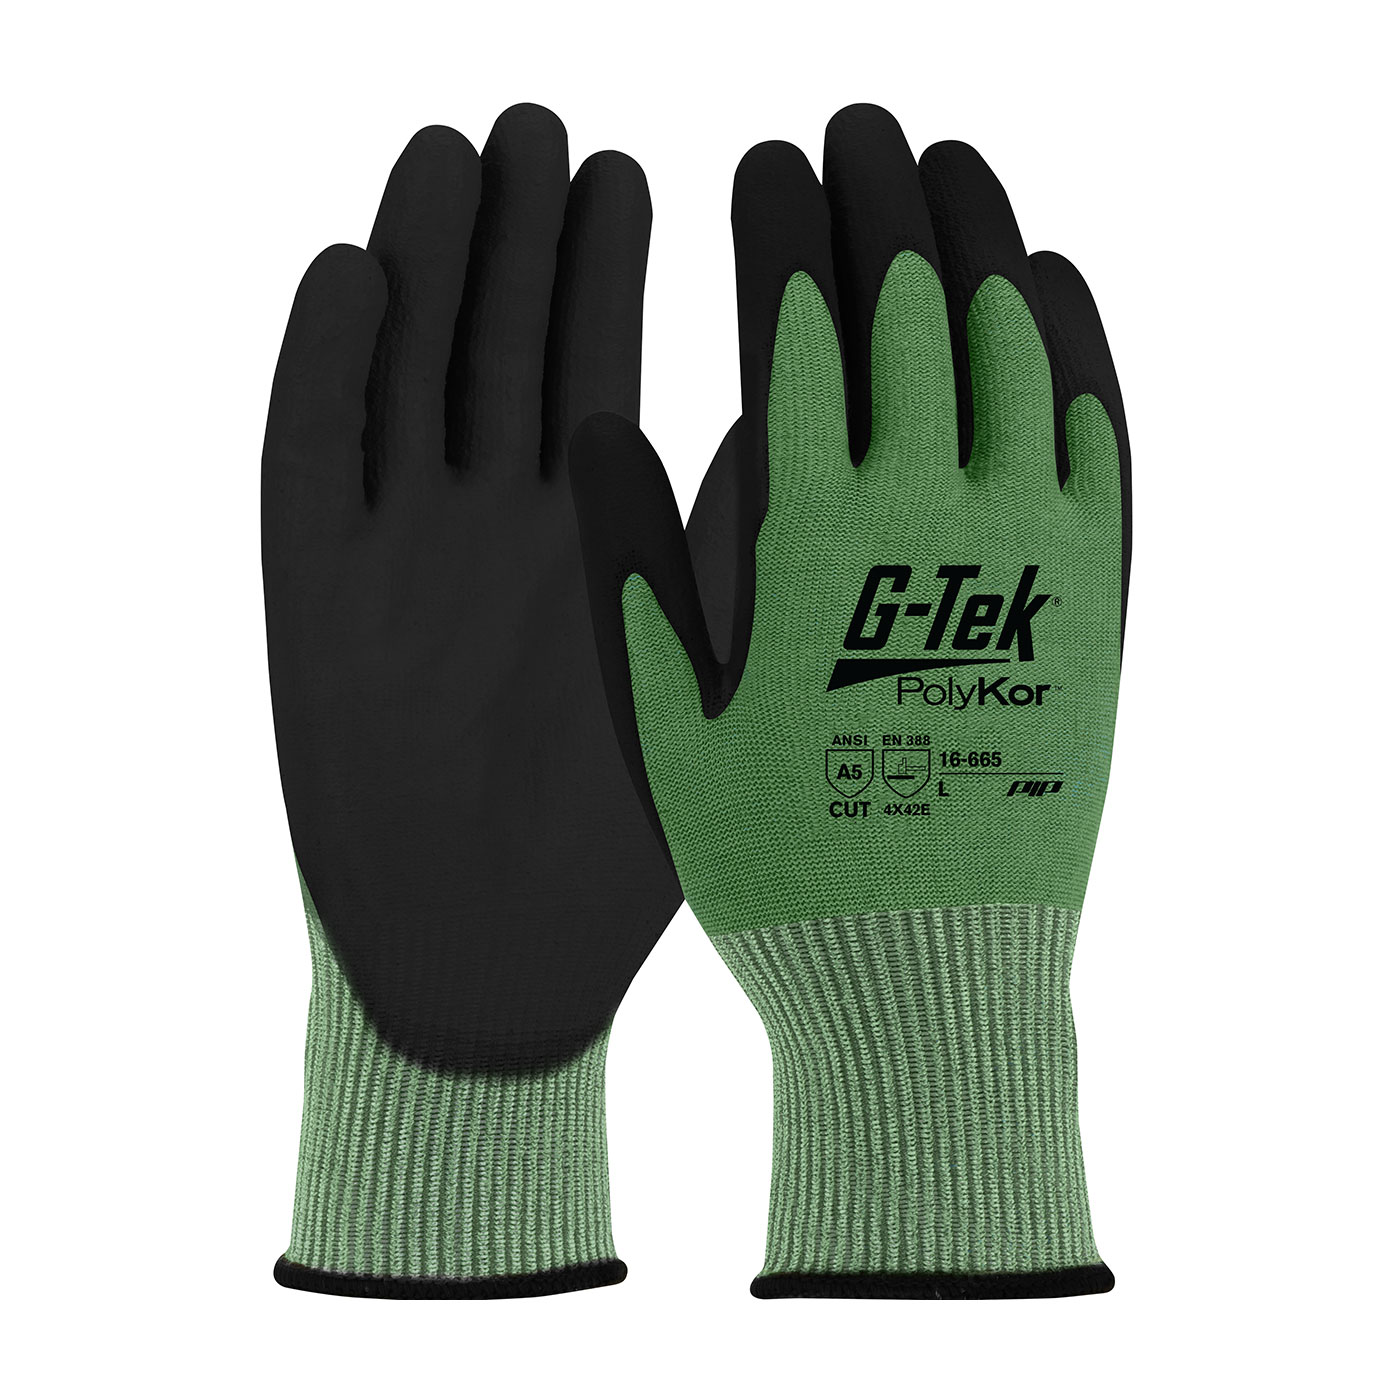 #16-665 PIP® G-Tek® PolyKor™ PU Coated Grip A5 Cut Gloves